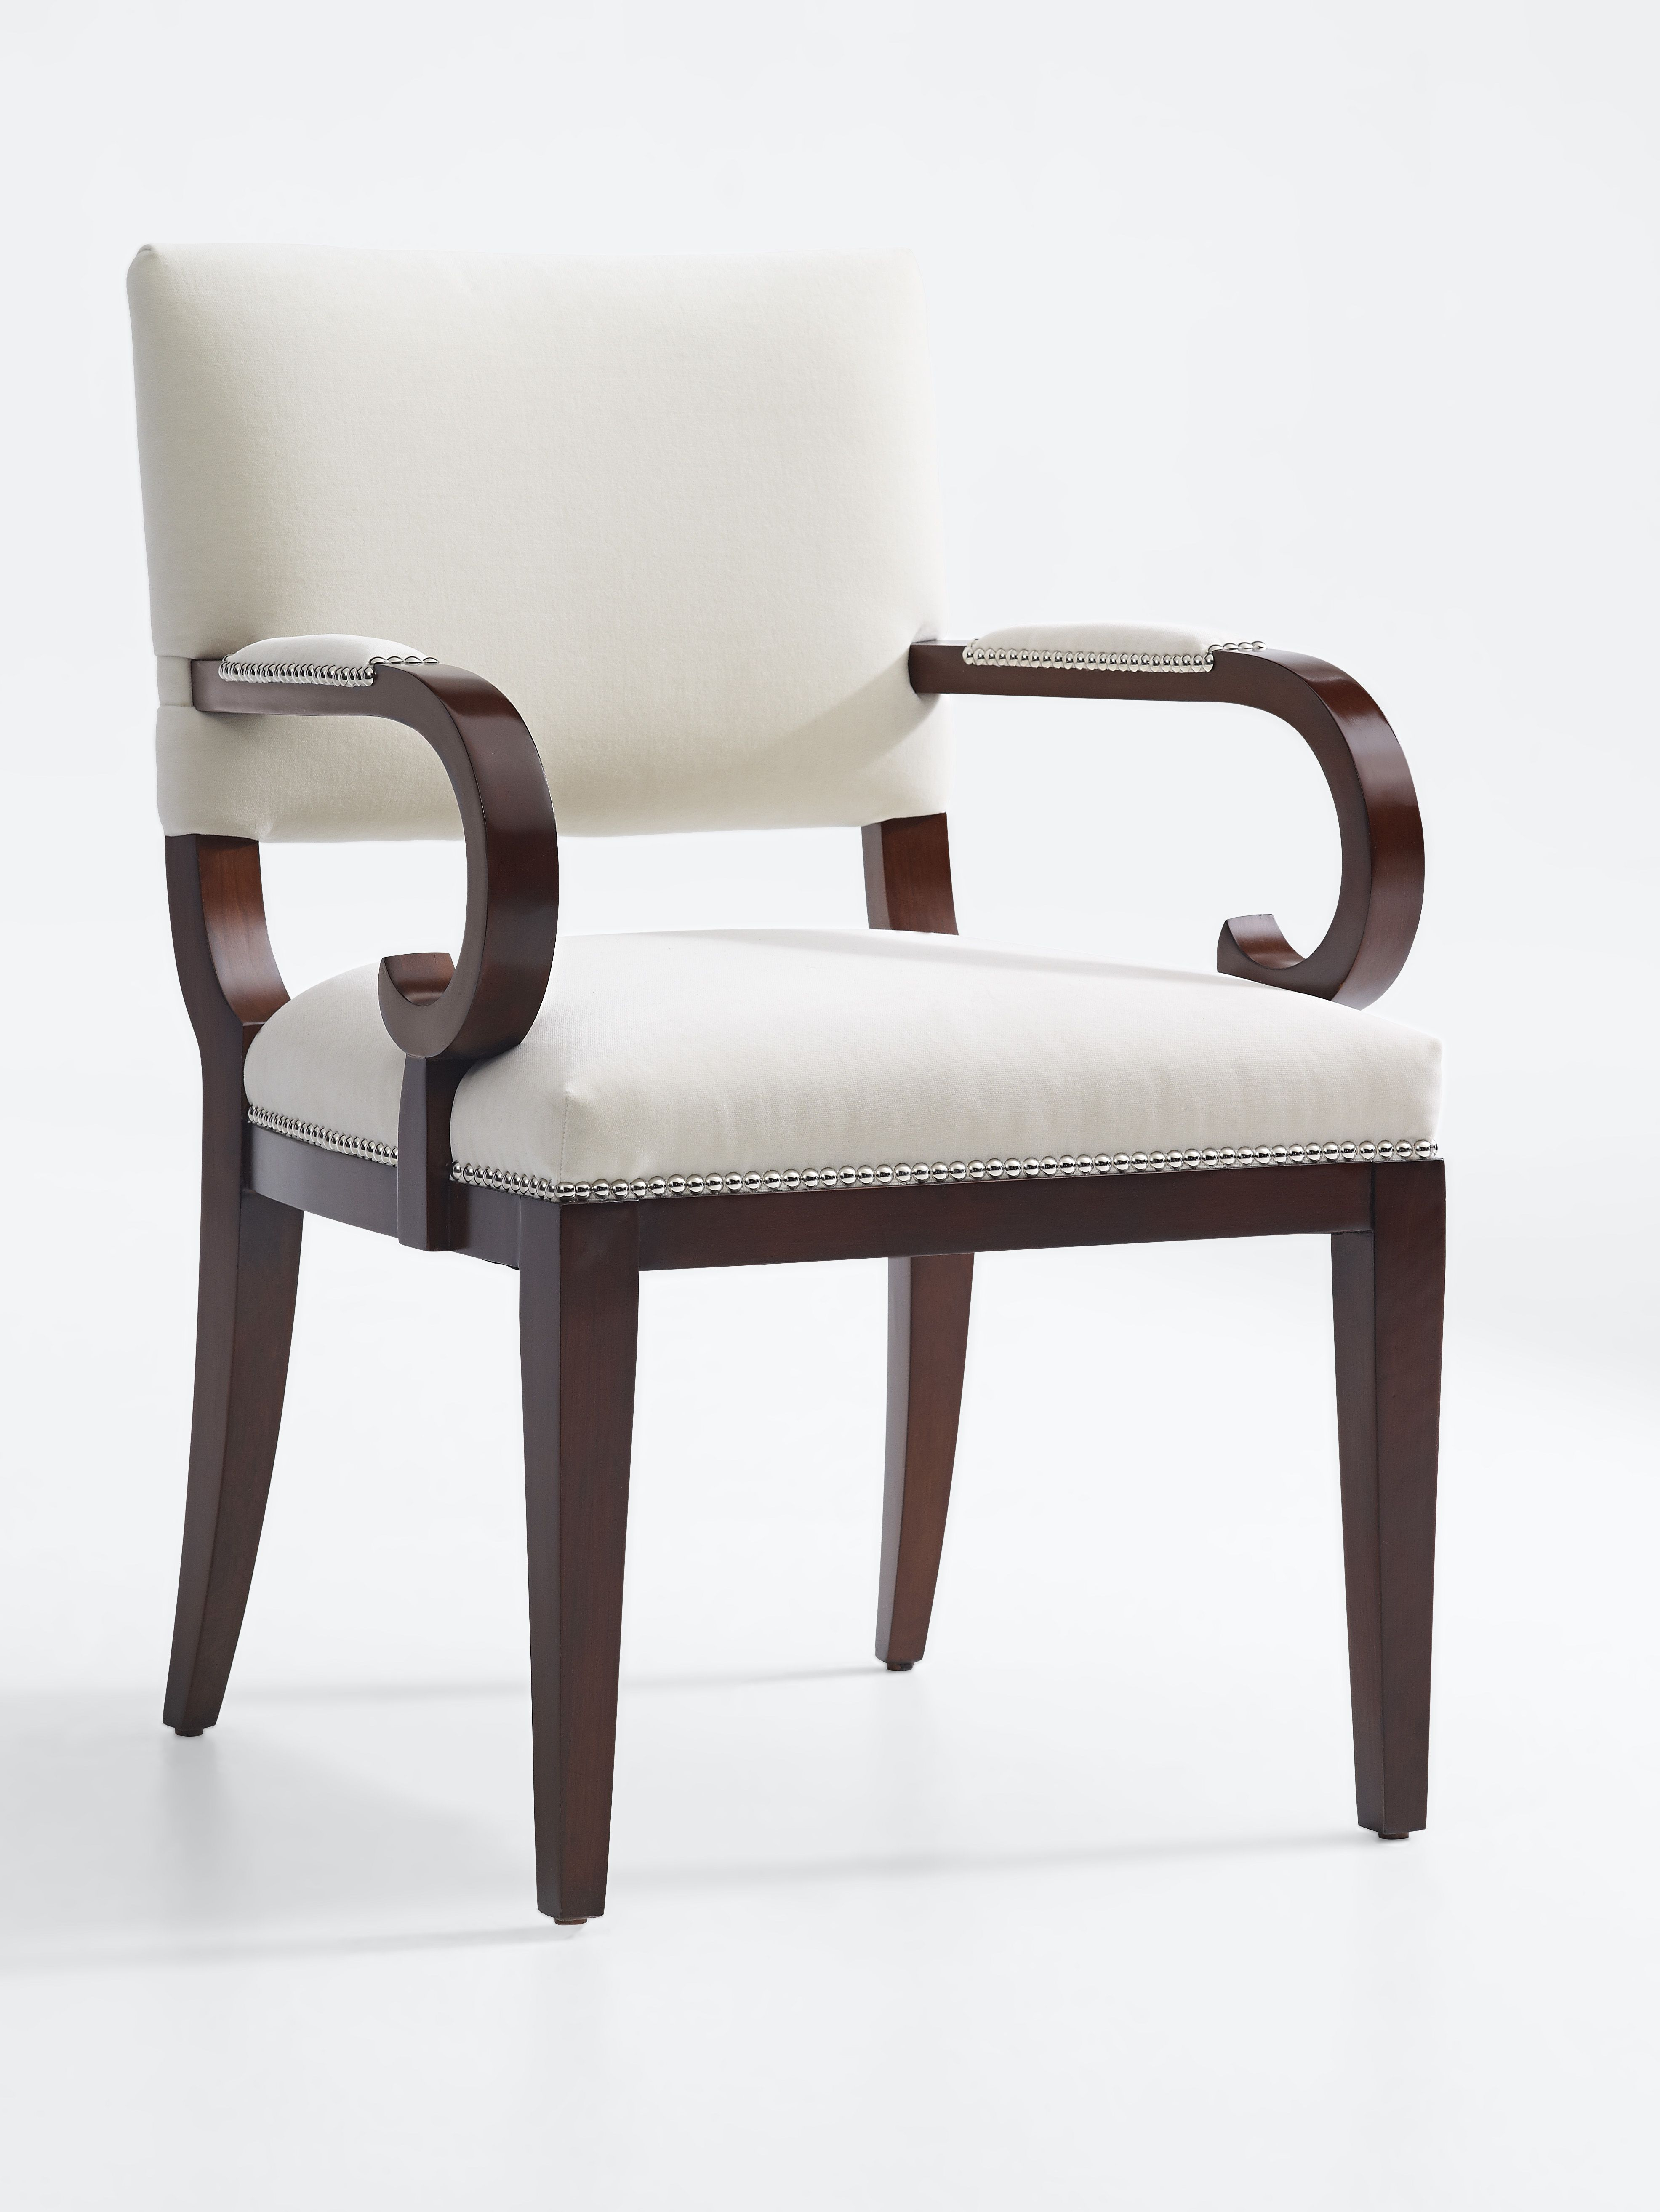 Ralph Lauren Home's Mayfair Dining Arm Chair | 【單椅】 | Pinterest Throughout Tate Arm Sofa Chairs (View 6 of 25)